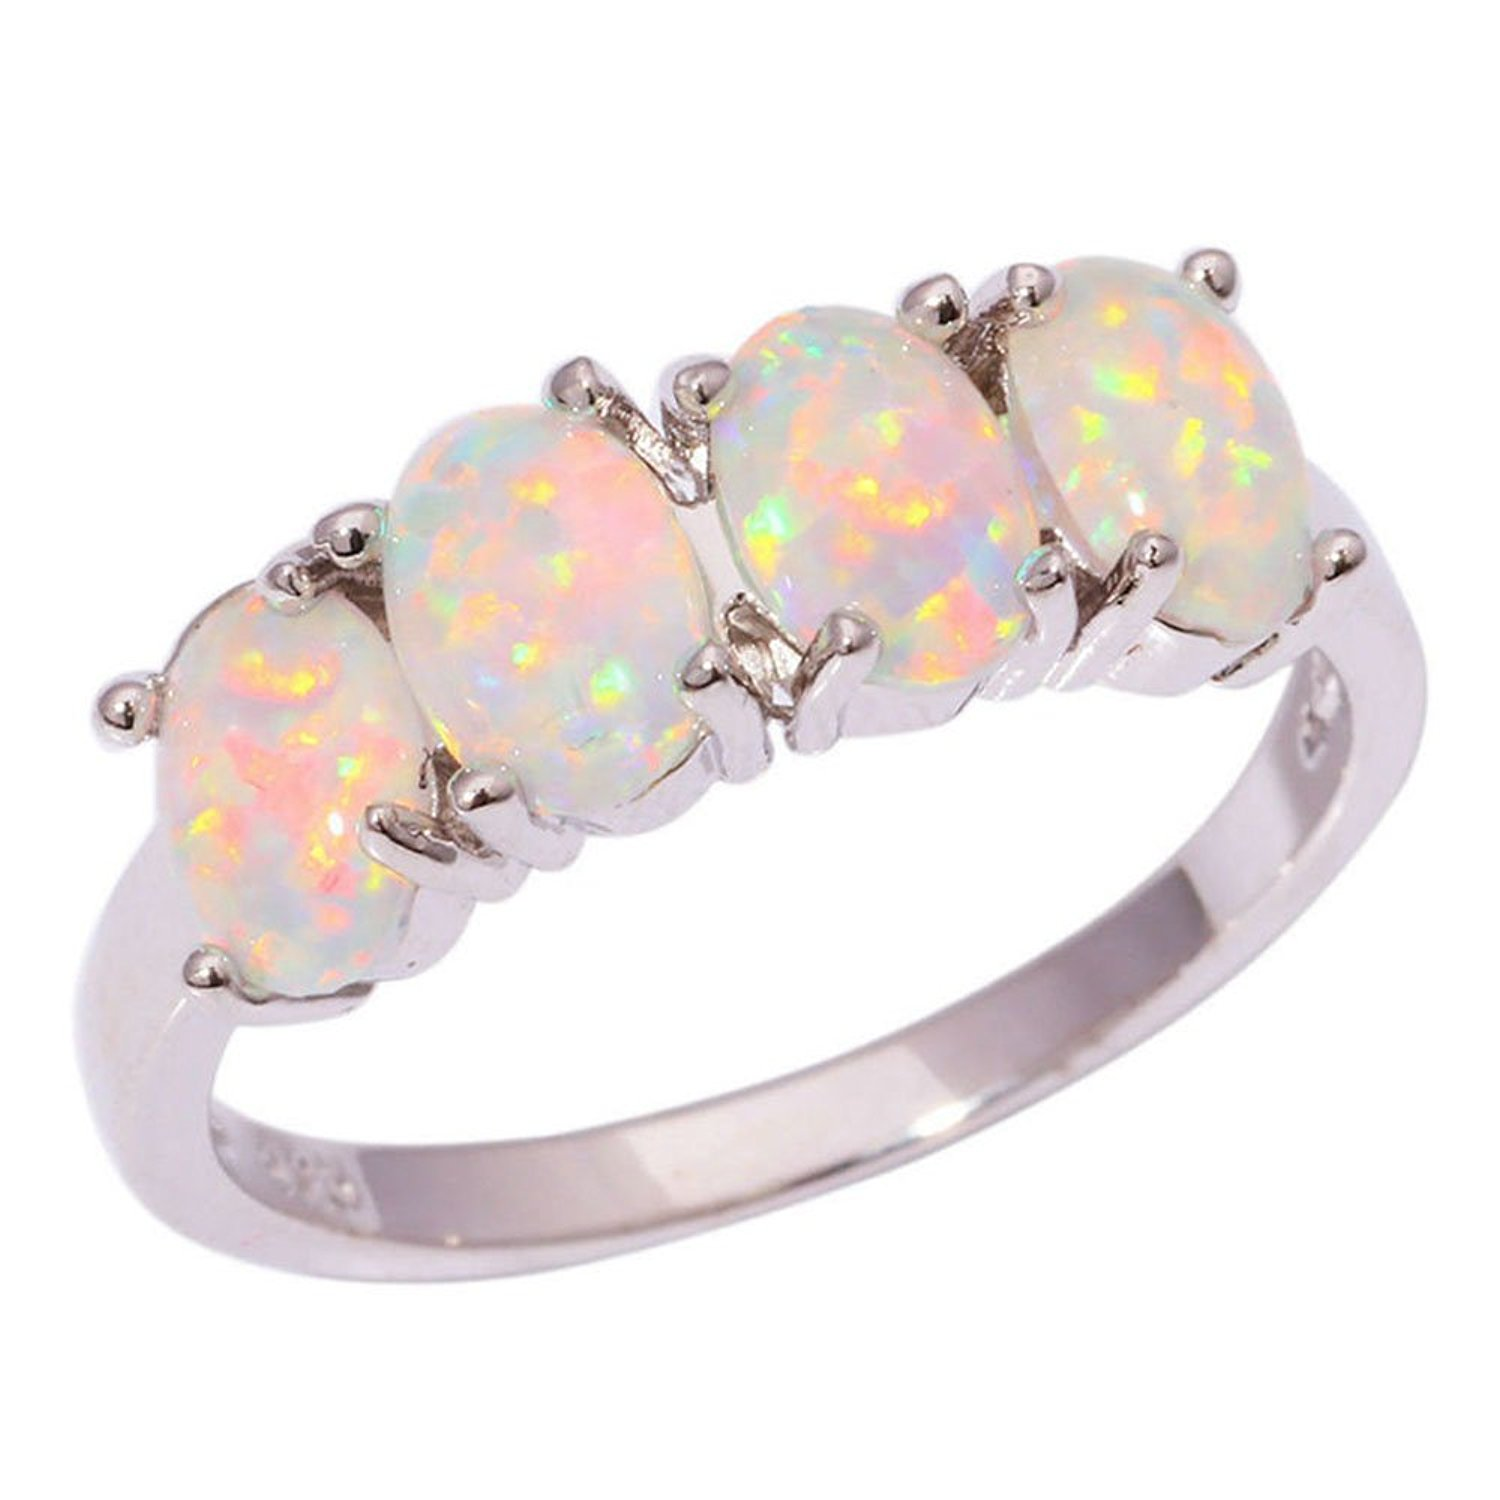 F/&F Ring Fashion White Fire Opal Ring Vintage Jewelry for Women Wedding Engagement Bridal Rings